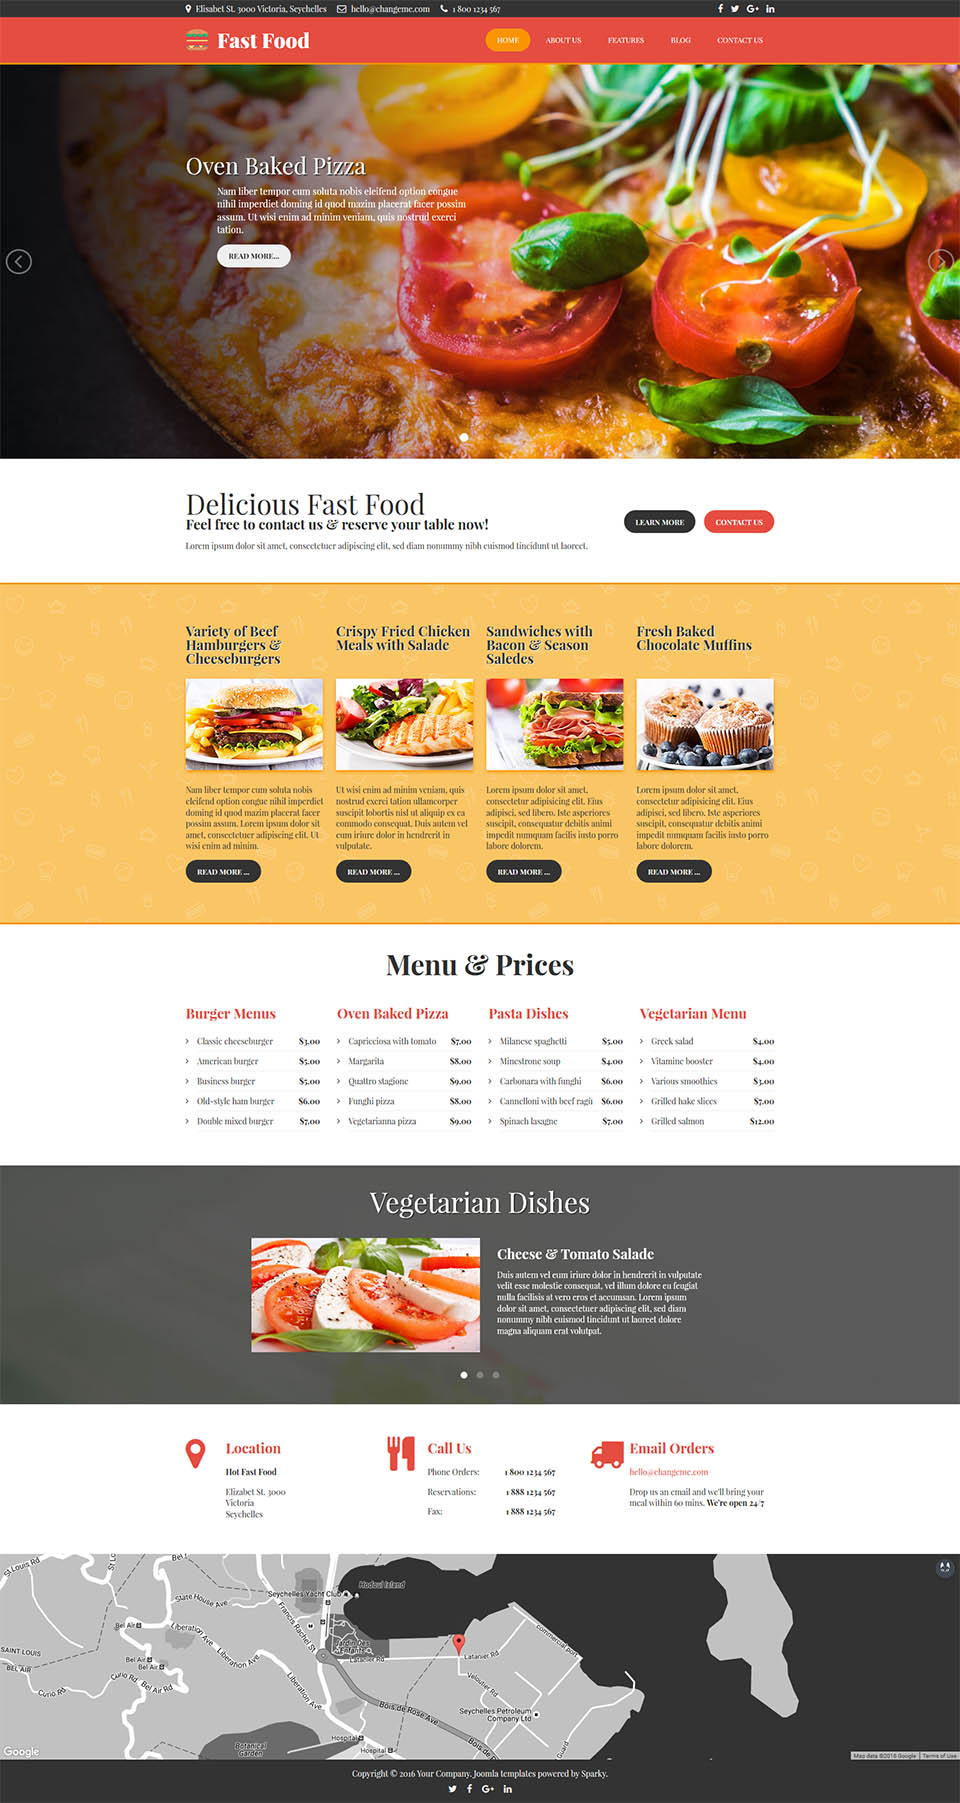 Hotthemes fast food v260 template restaurant joomla template for joomla hotthemes fast food free download forumfinder Images